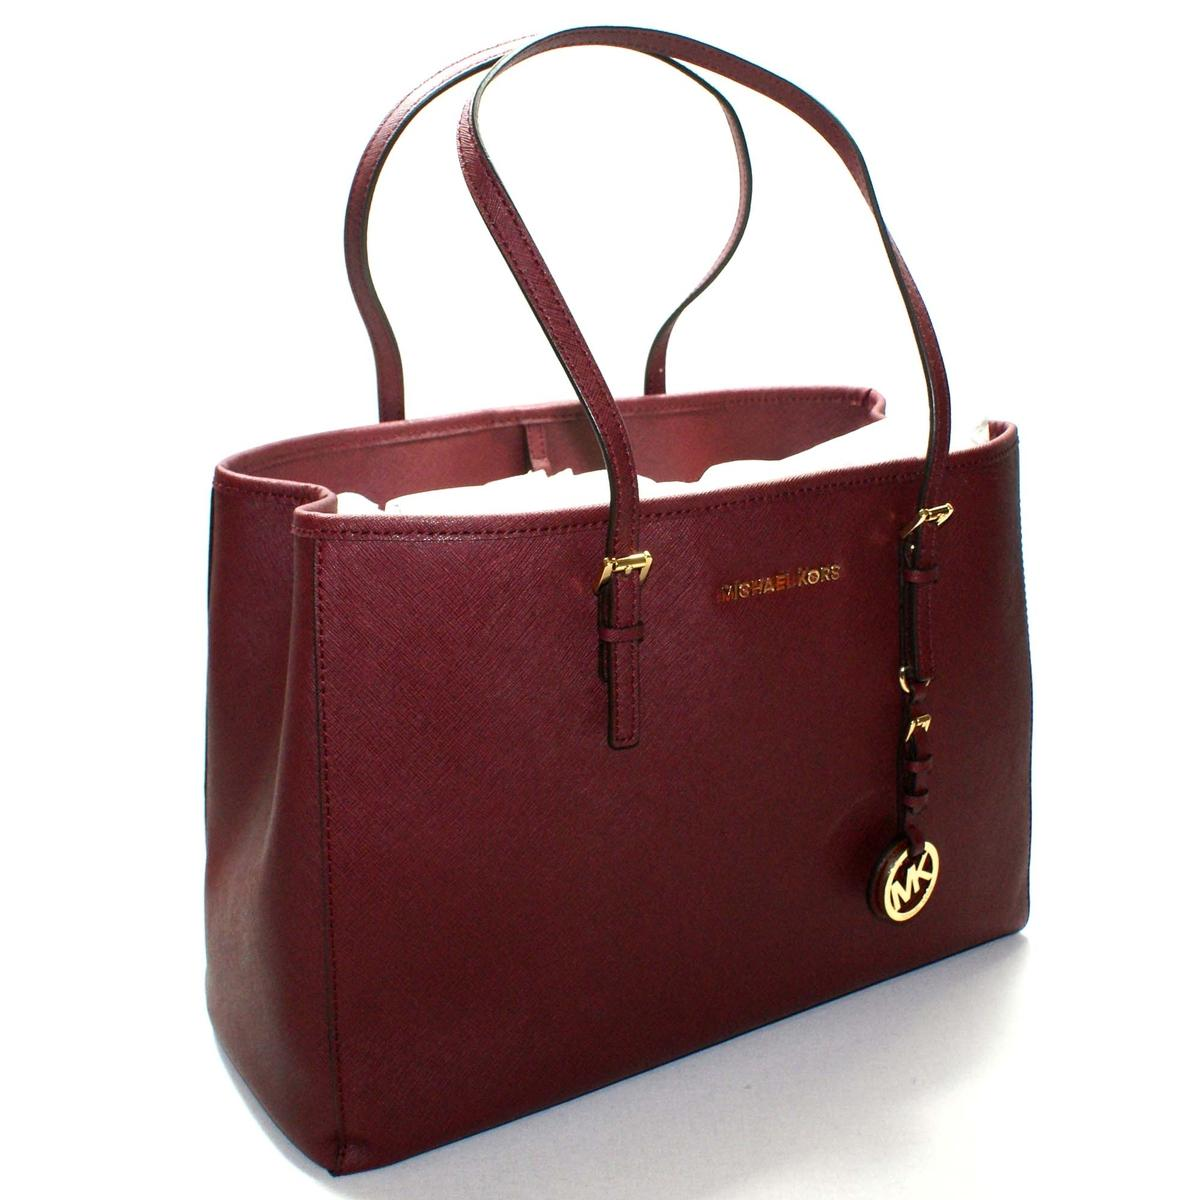 57a630e08bd511 Home · Michael Kors · Saffiano Jet Set Travel East West Tote Cinnabar.  CLICK THUMBNAIL TO ZOOM. Found ...